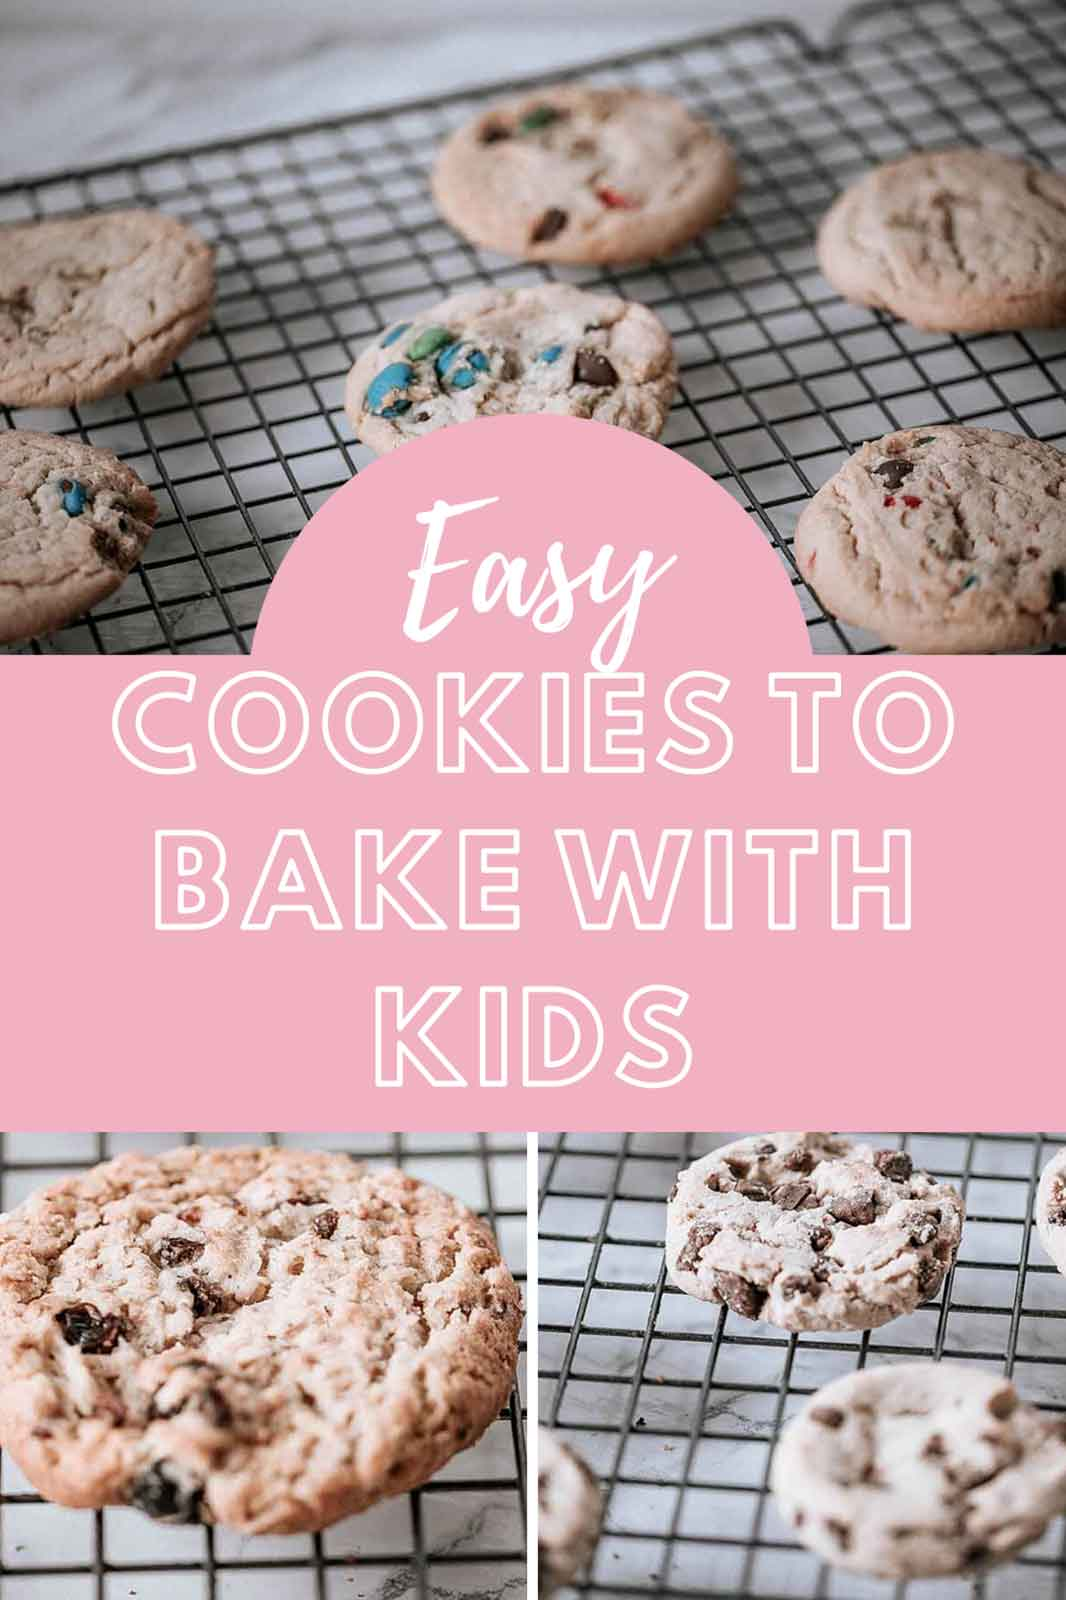 Easy Cookies to Bake With Kids